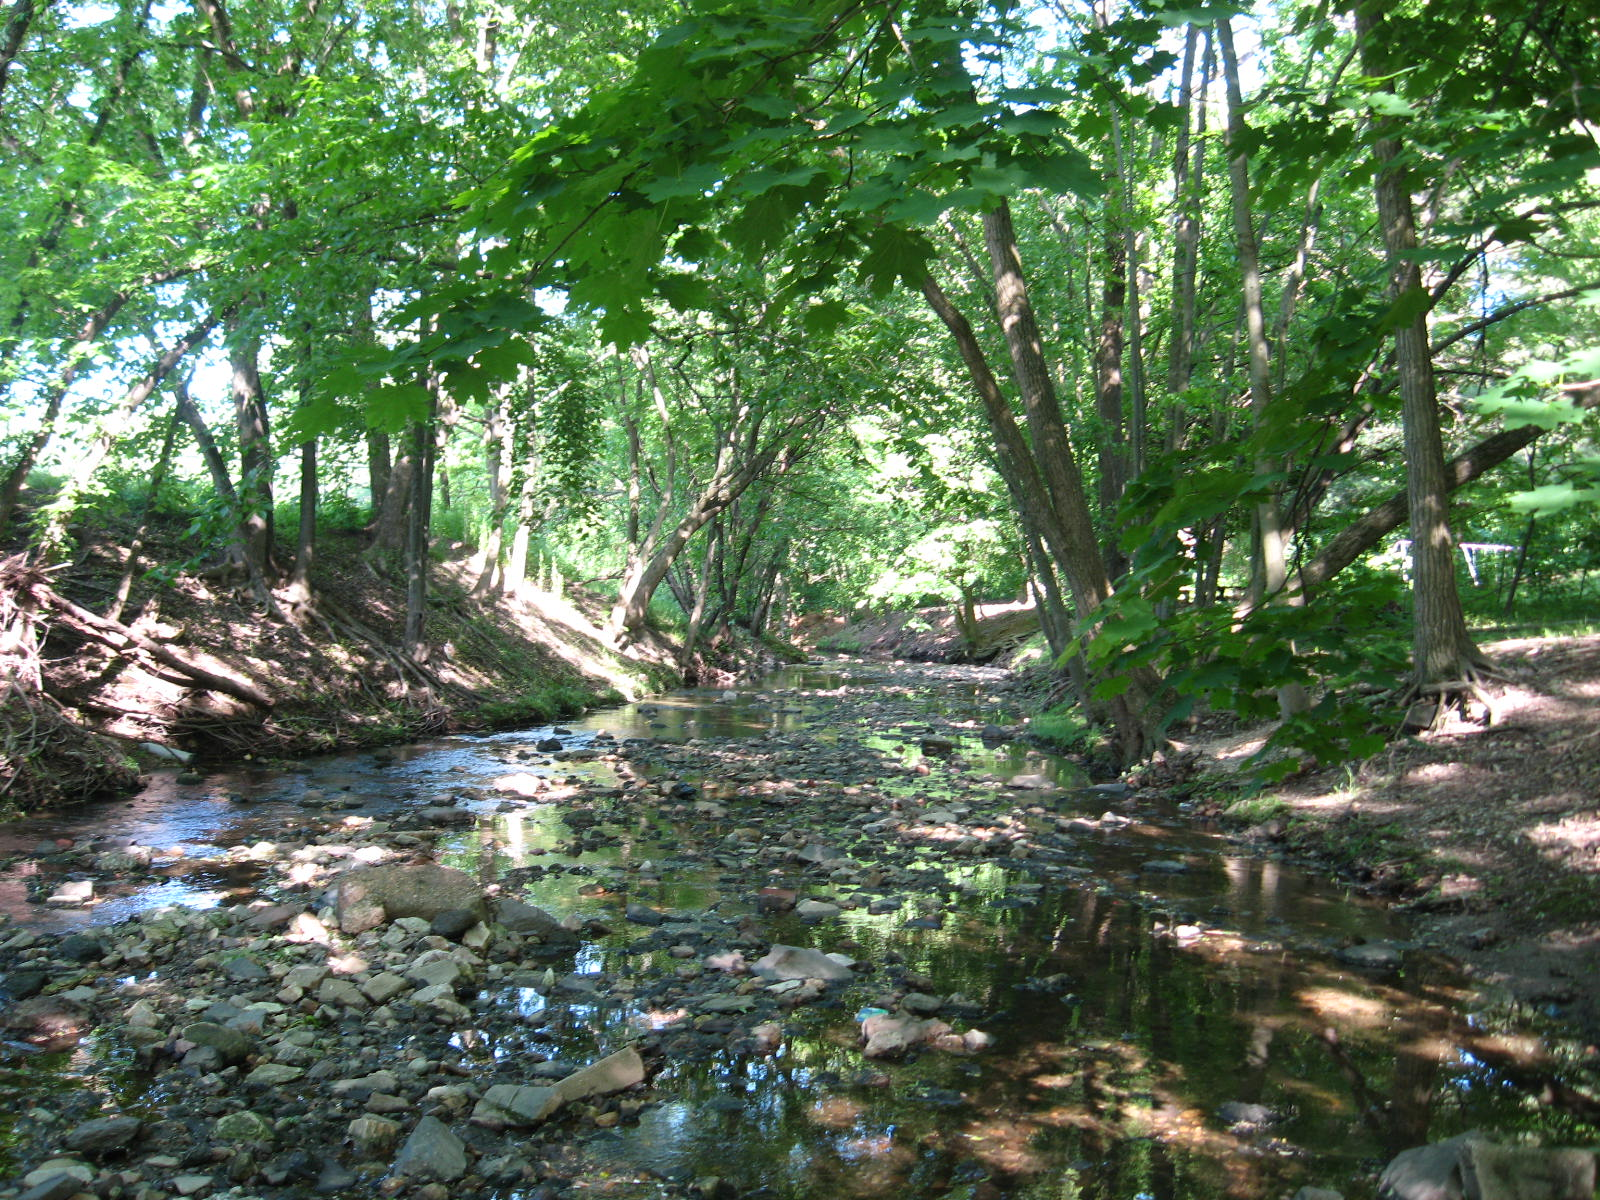 Tookany Creek in Glenside, PA